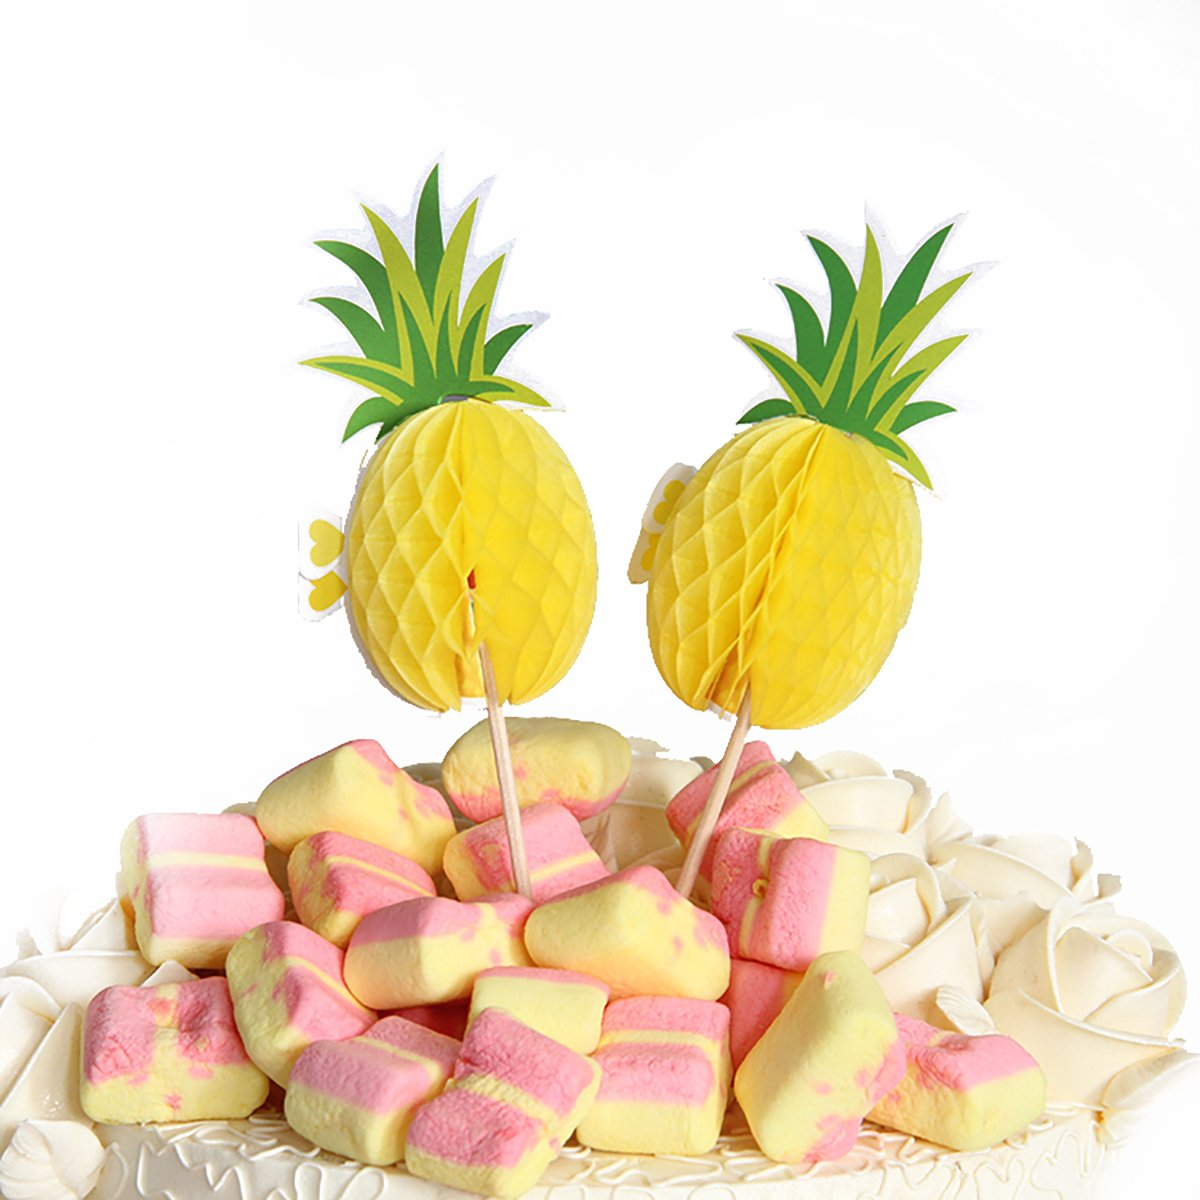 50PCS Hawaiian Cocktail Drink Picks Pineapple Cupcakes Party Supplies Tropical Paper Cocktail Parasol Picks Cupcake Toppers Picks Decoration Food Picks